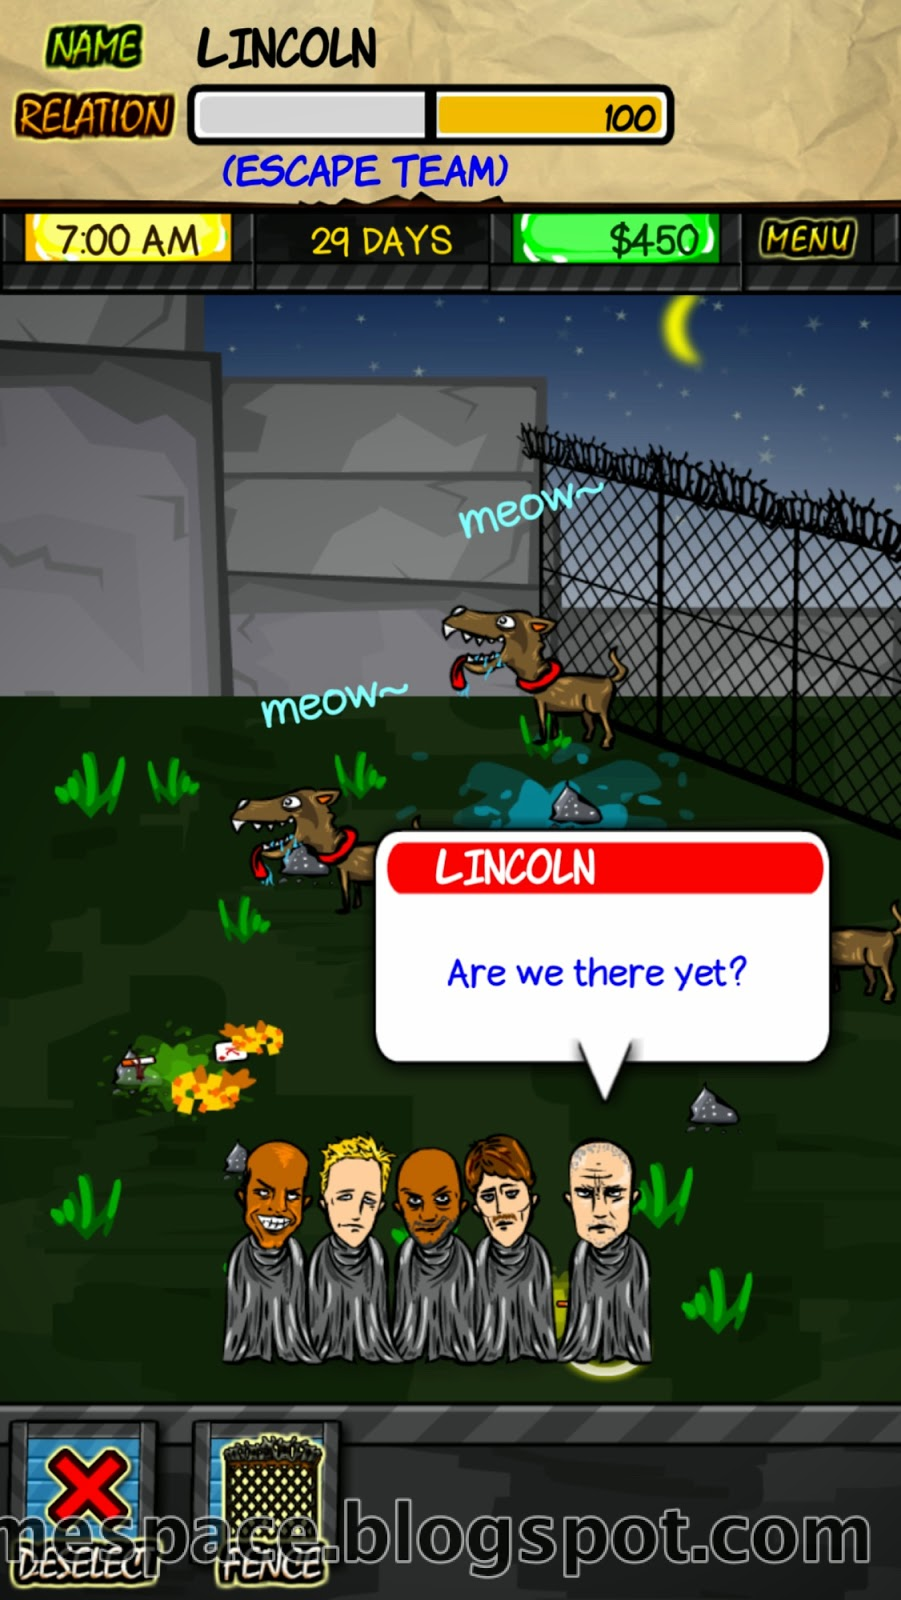 Prison Life RPG iOS Escape Plan